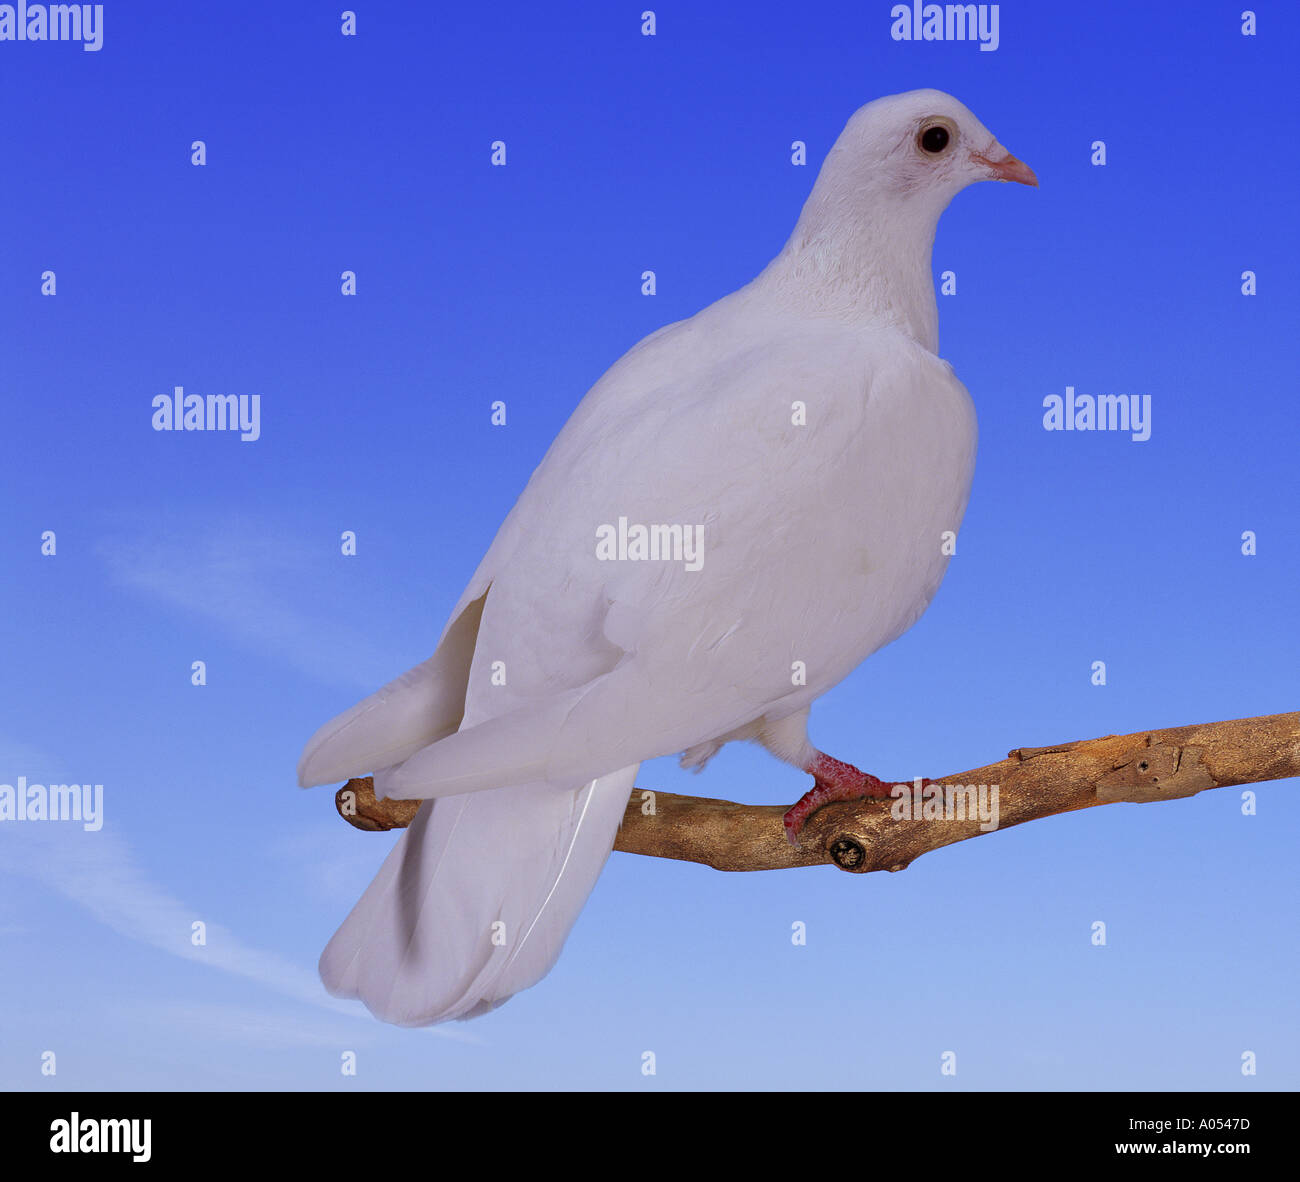 Colombe blanche Photo Stock